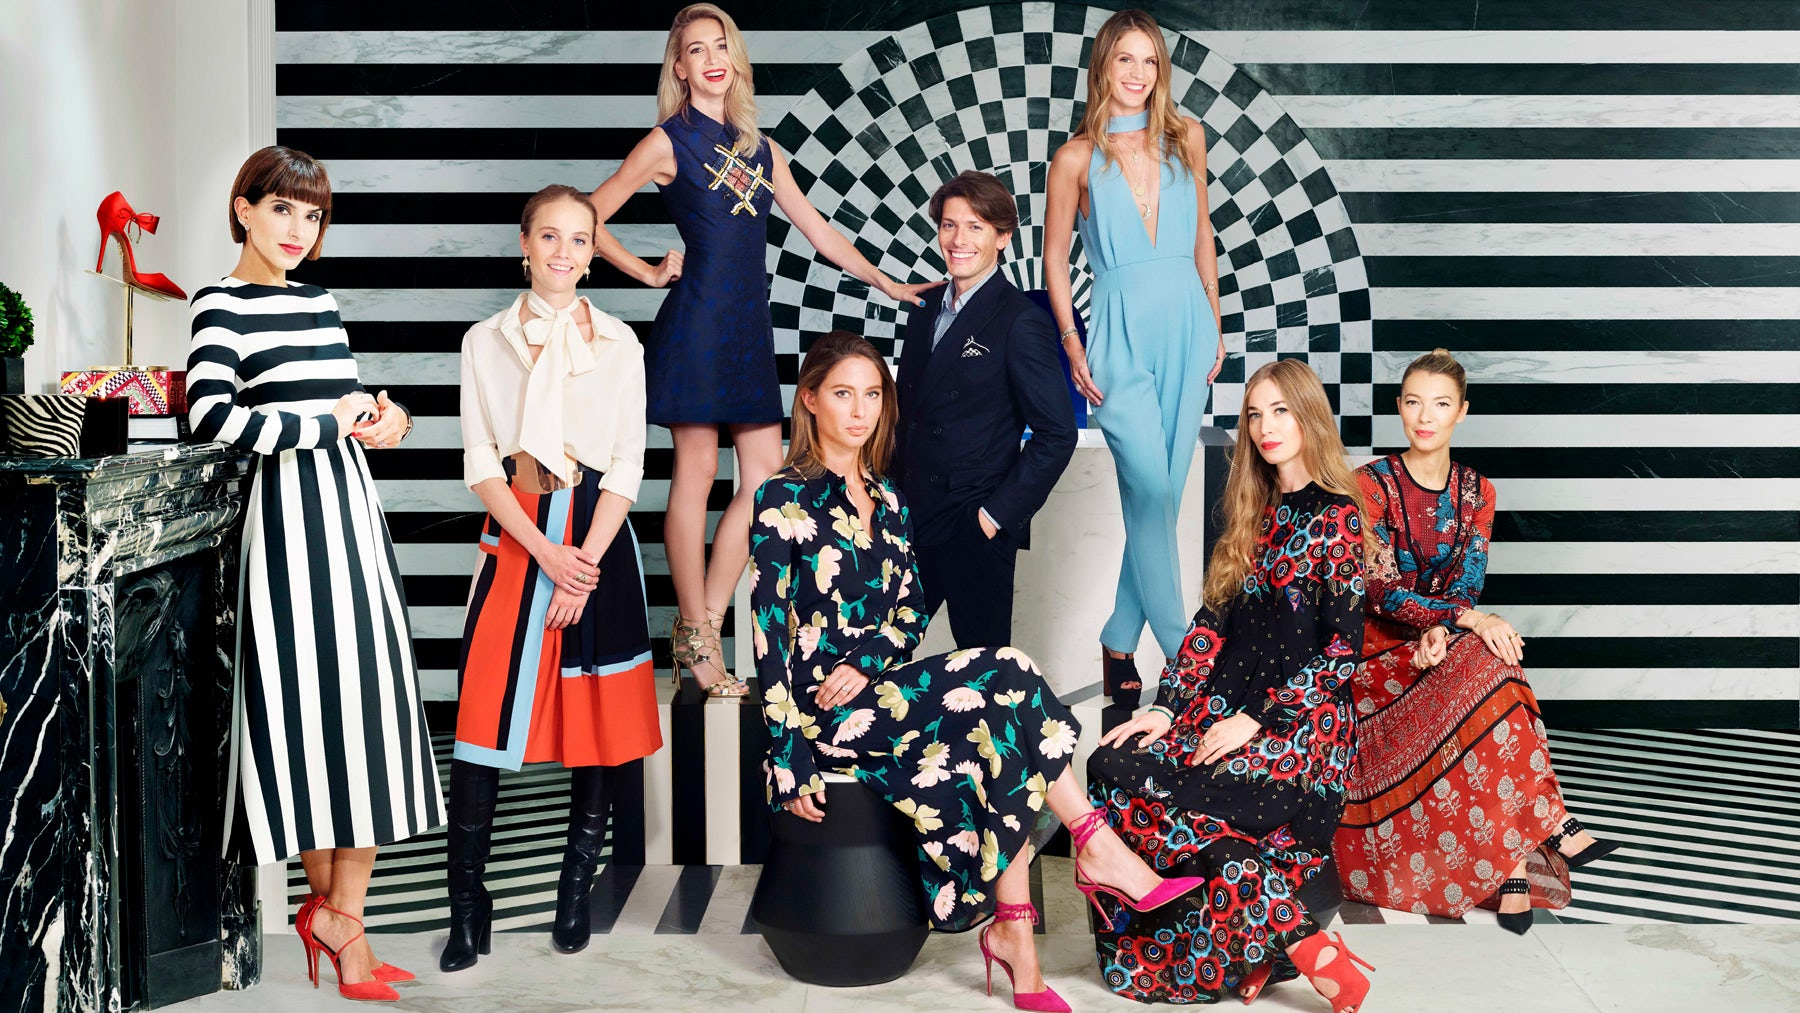 Aquazzura co-founder Edgardo Osorio with (L-R)  Deena Aljuhani Abdulaziz, Petra Palumbo, Sabine Getty, Jemima Jones, Eugenie Niarchos, Anouska Beckwith and Roberta Benteler | Source: Courtesy | Photographer Chris Floyd